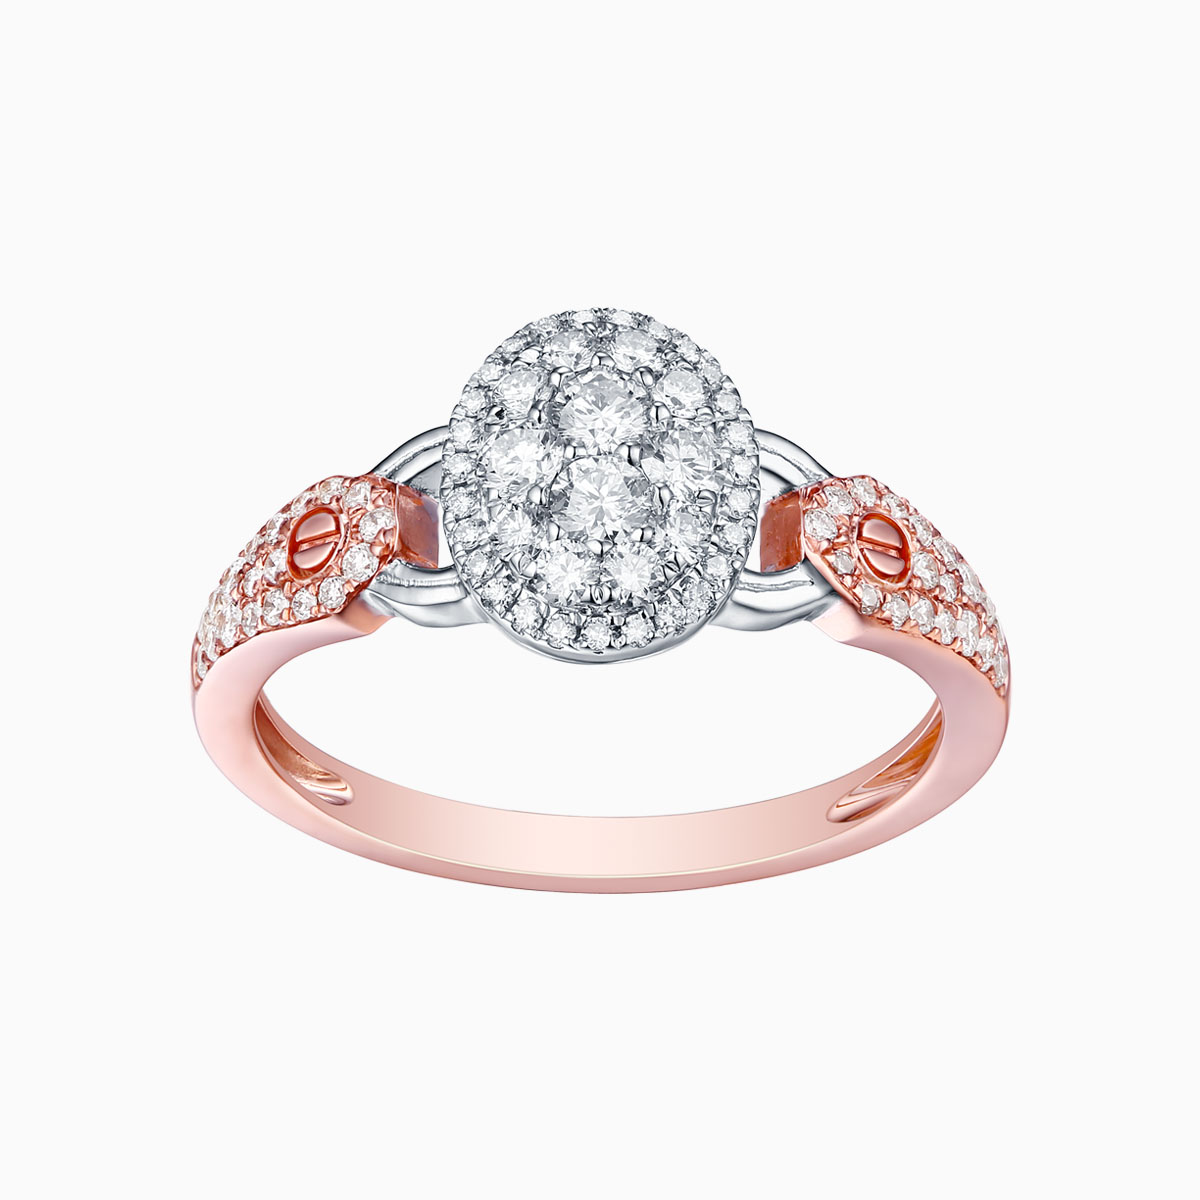 R17601WHT- 14K Rose Gold Diamond Ring, 0.58 TCW